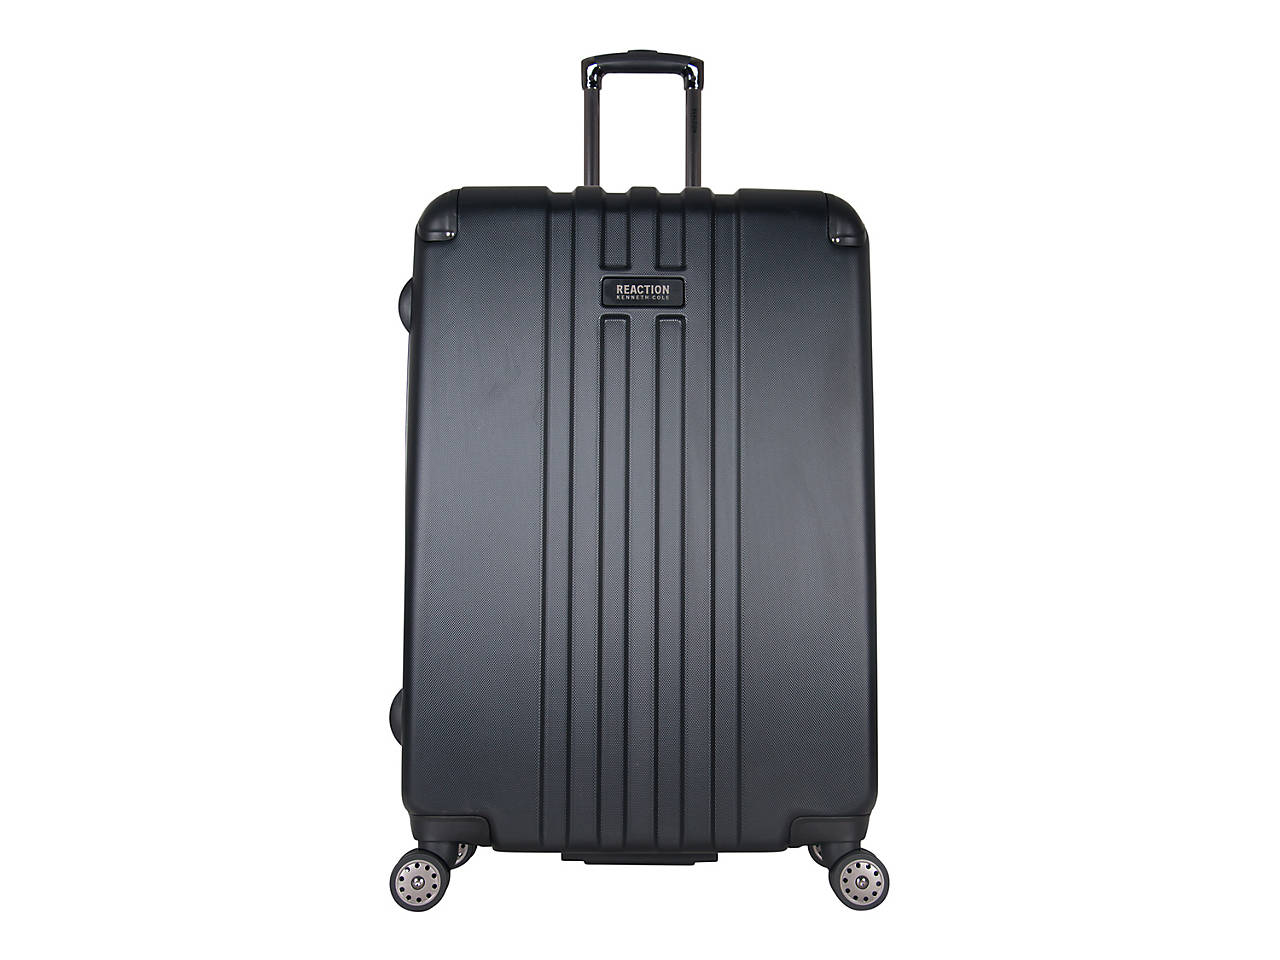 7eb2b4b3a Kenneth Cole Reaction - Luggage Corner Guard 29-Inch Checked Hard ...